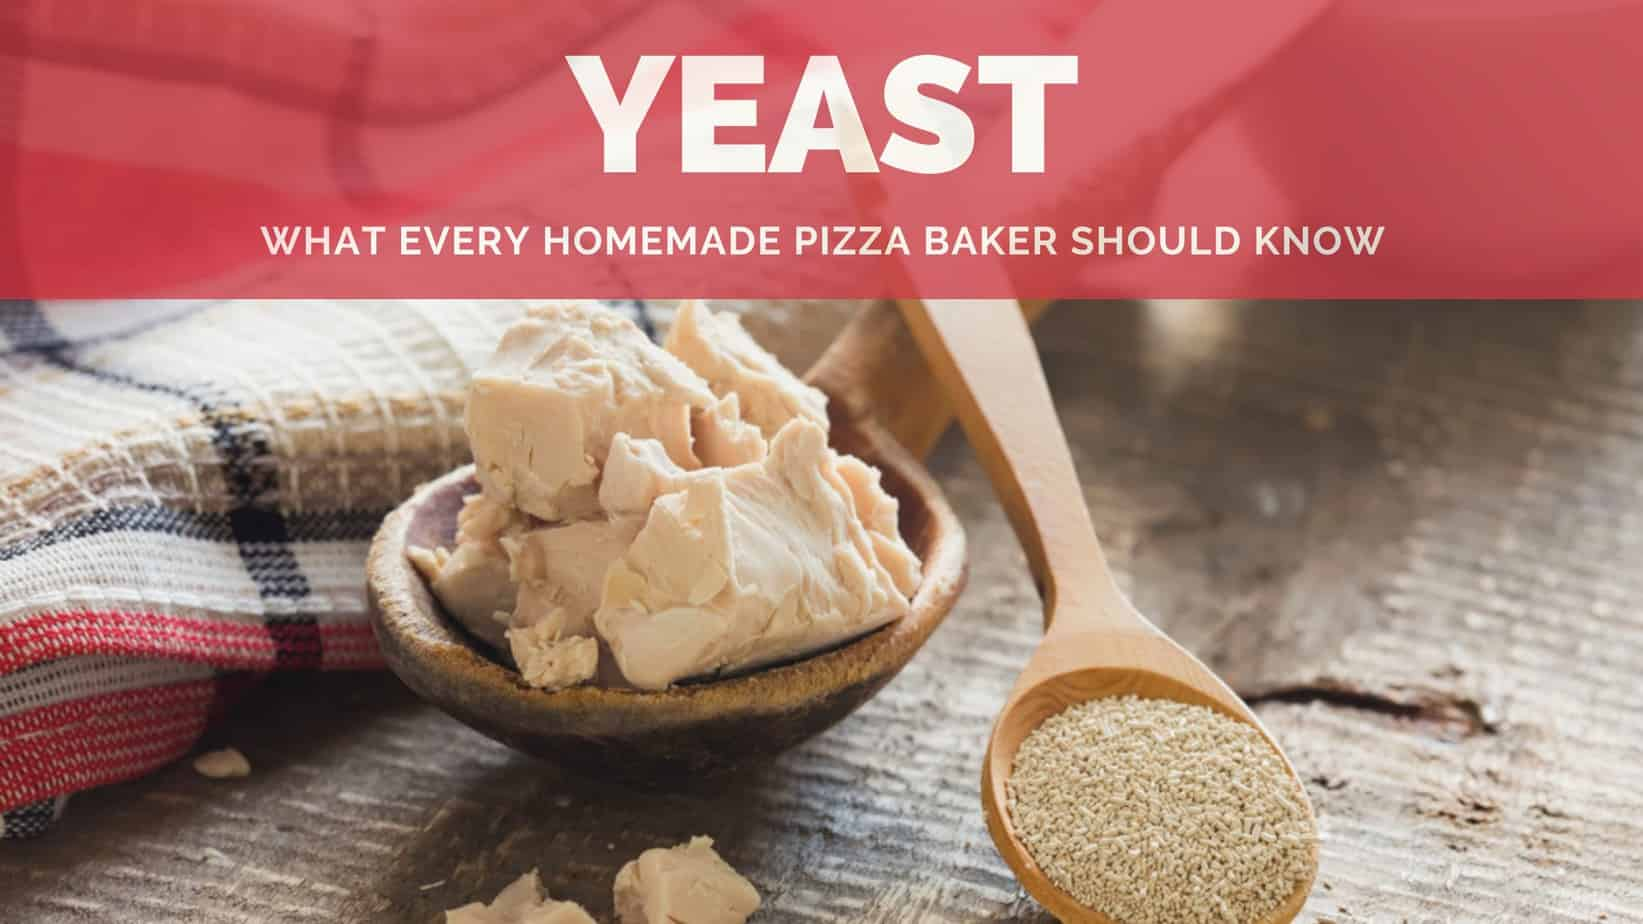 Best Yeast what you need to know image